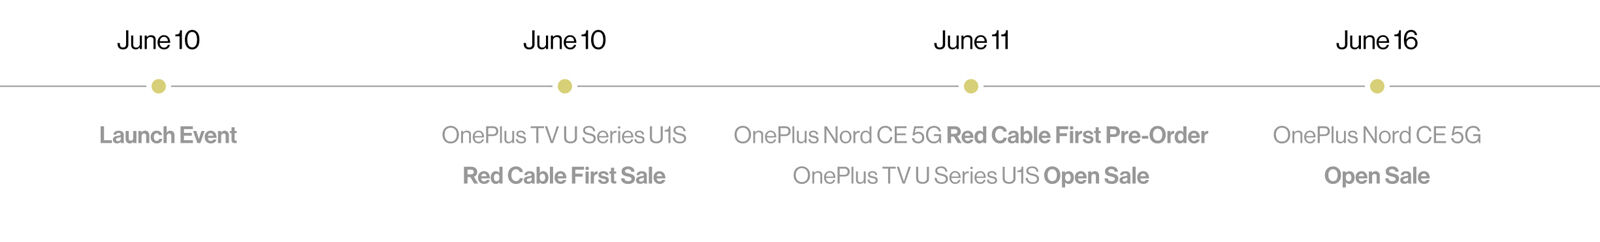 OnePlus Nord CE 5G pre-order timeline